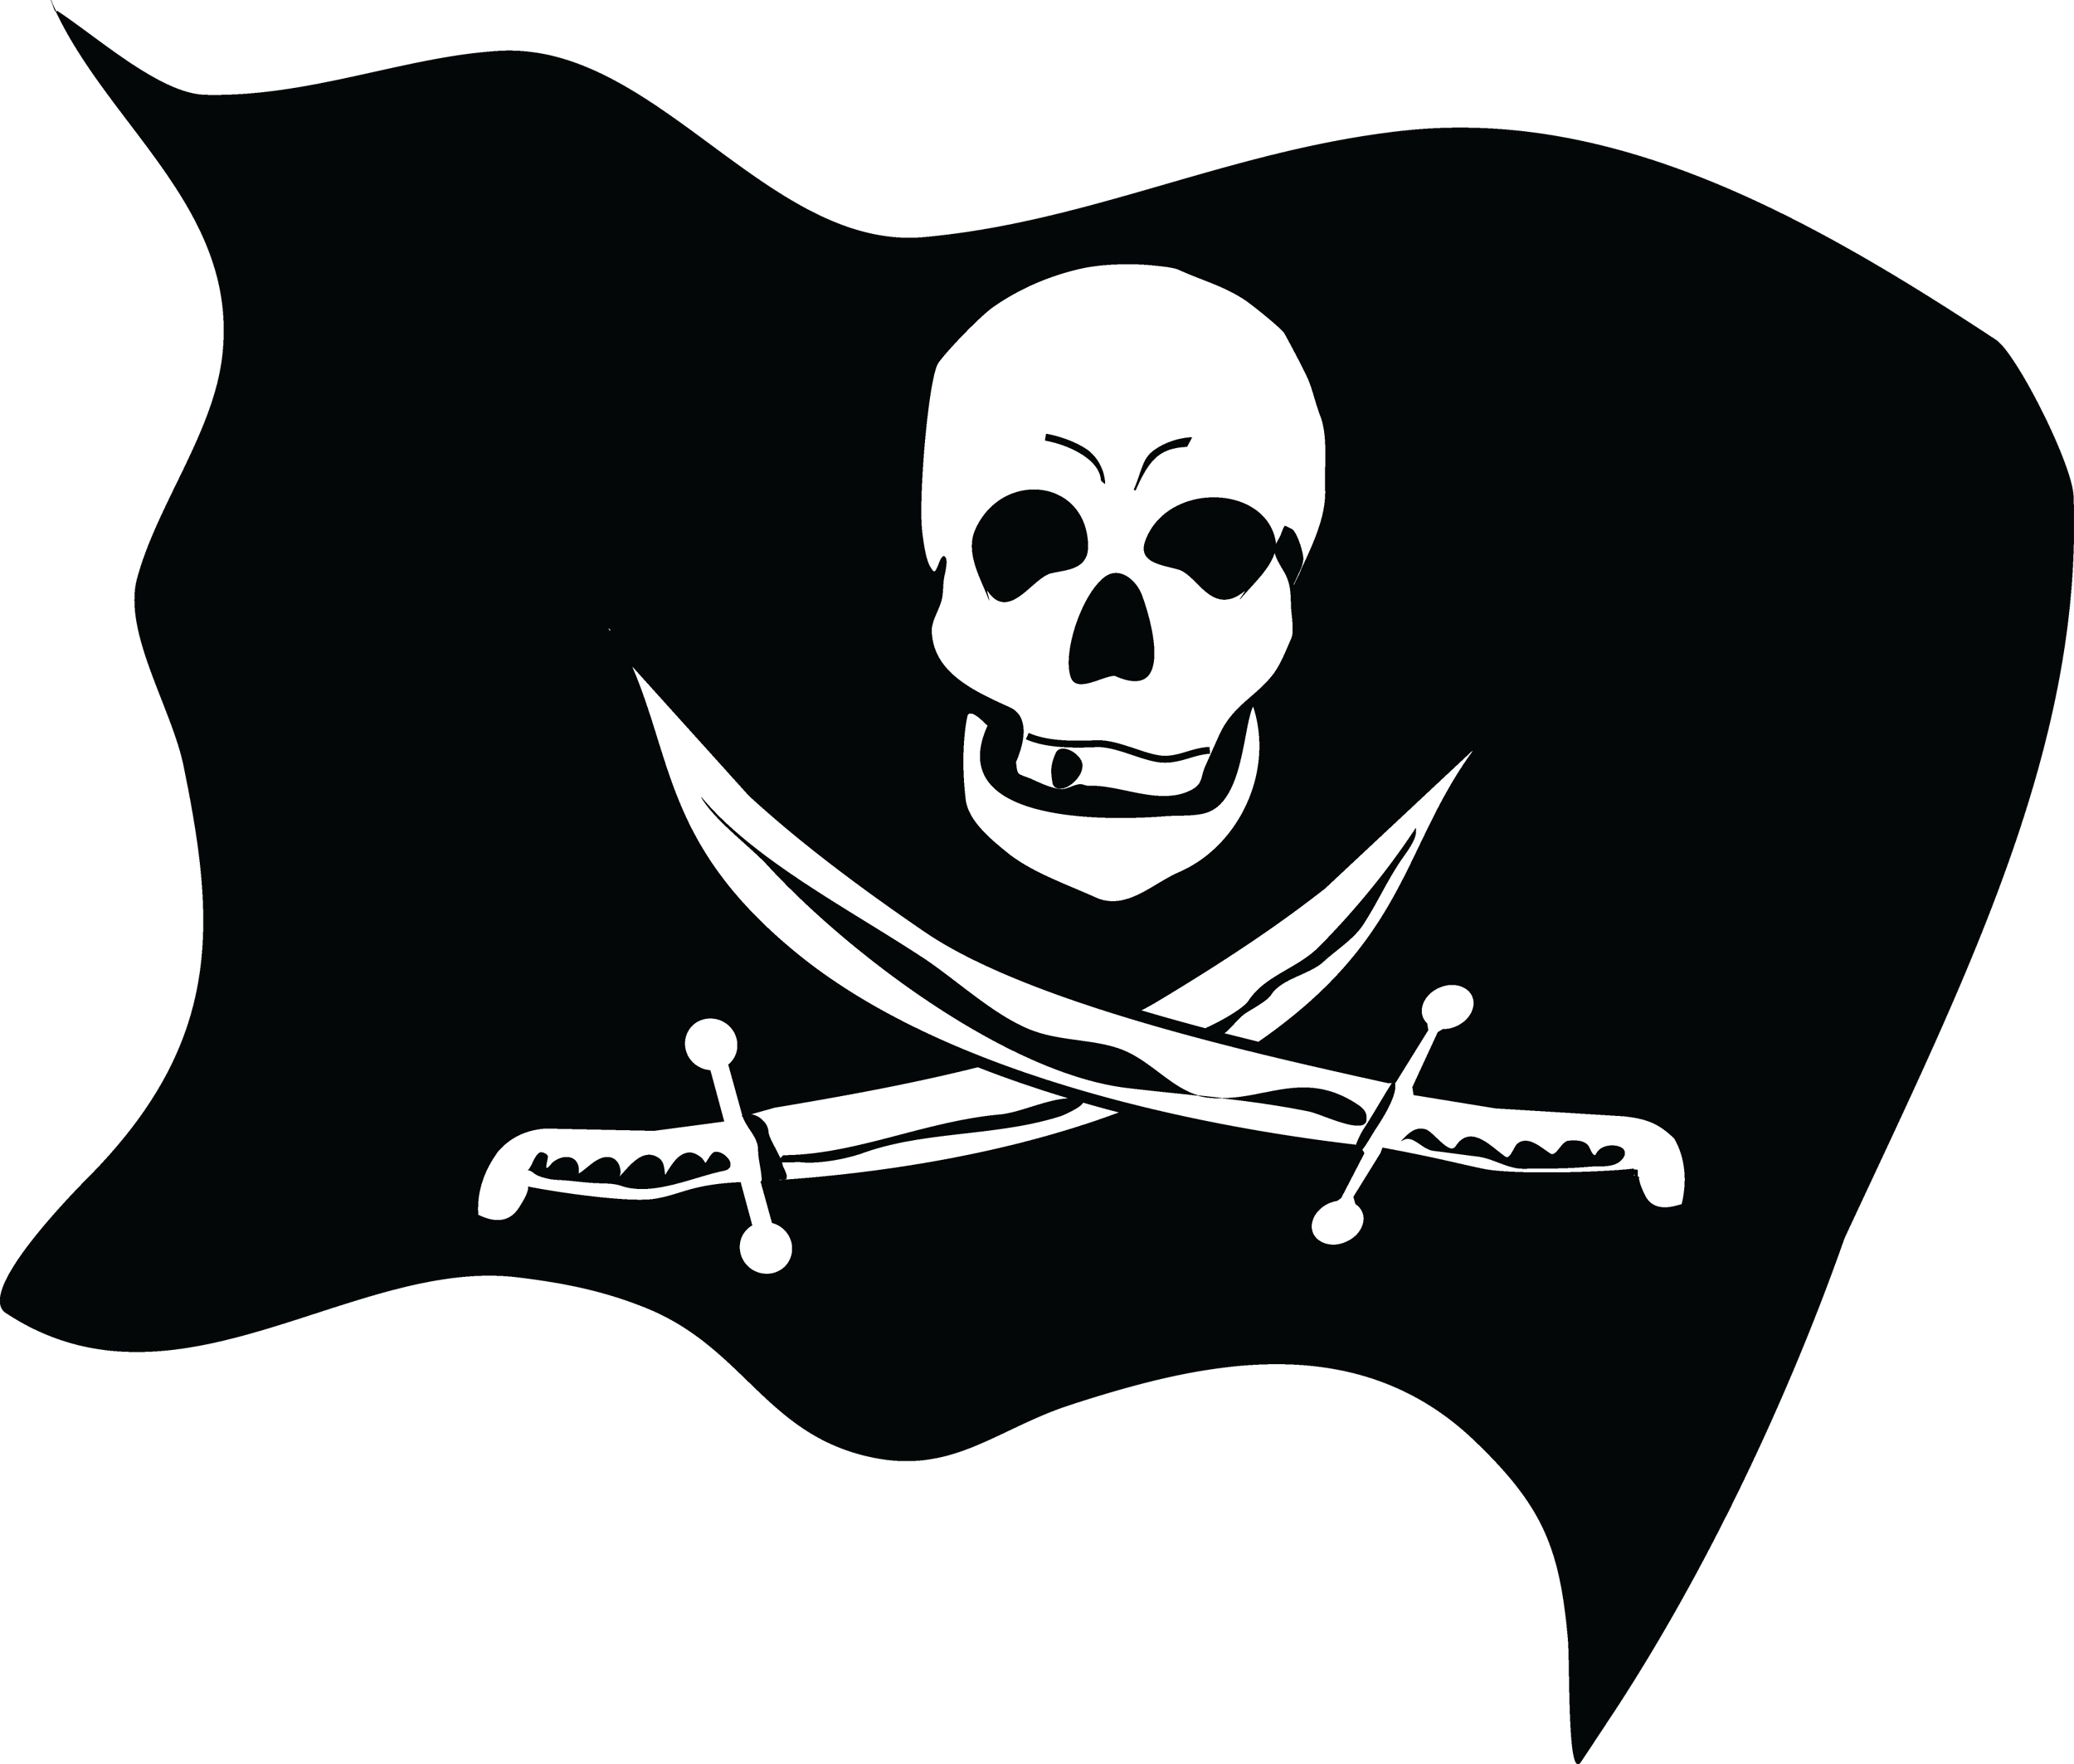 Pirate png . Criminal clipart capture the flag